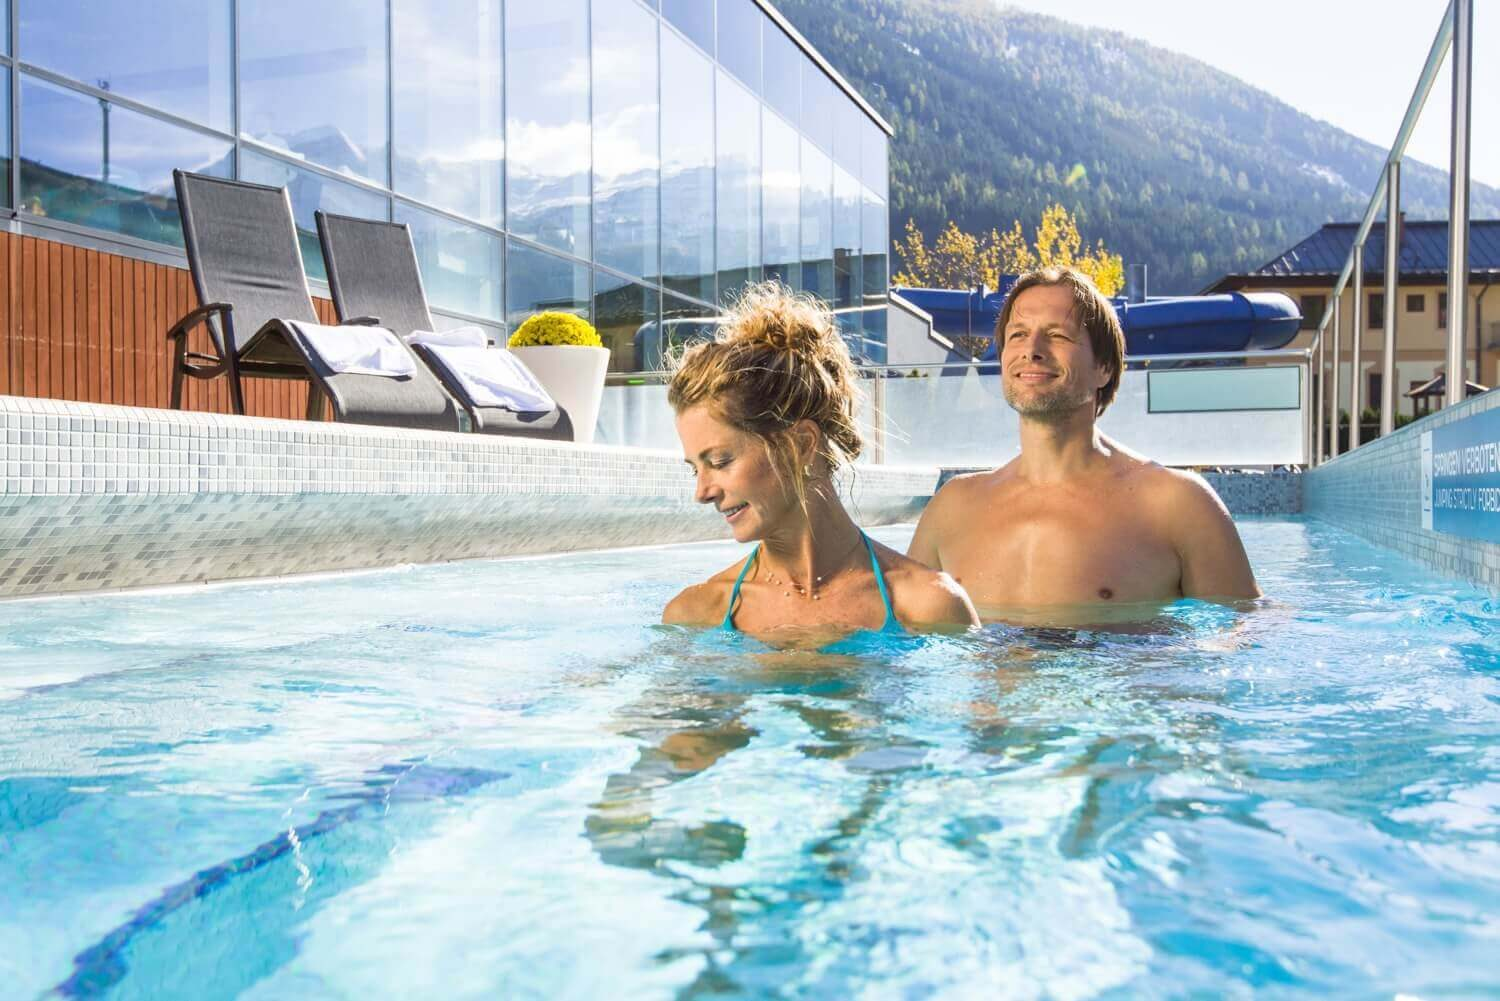 Thermenurlaub in der Felsentherme Bad Gastein